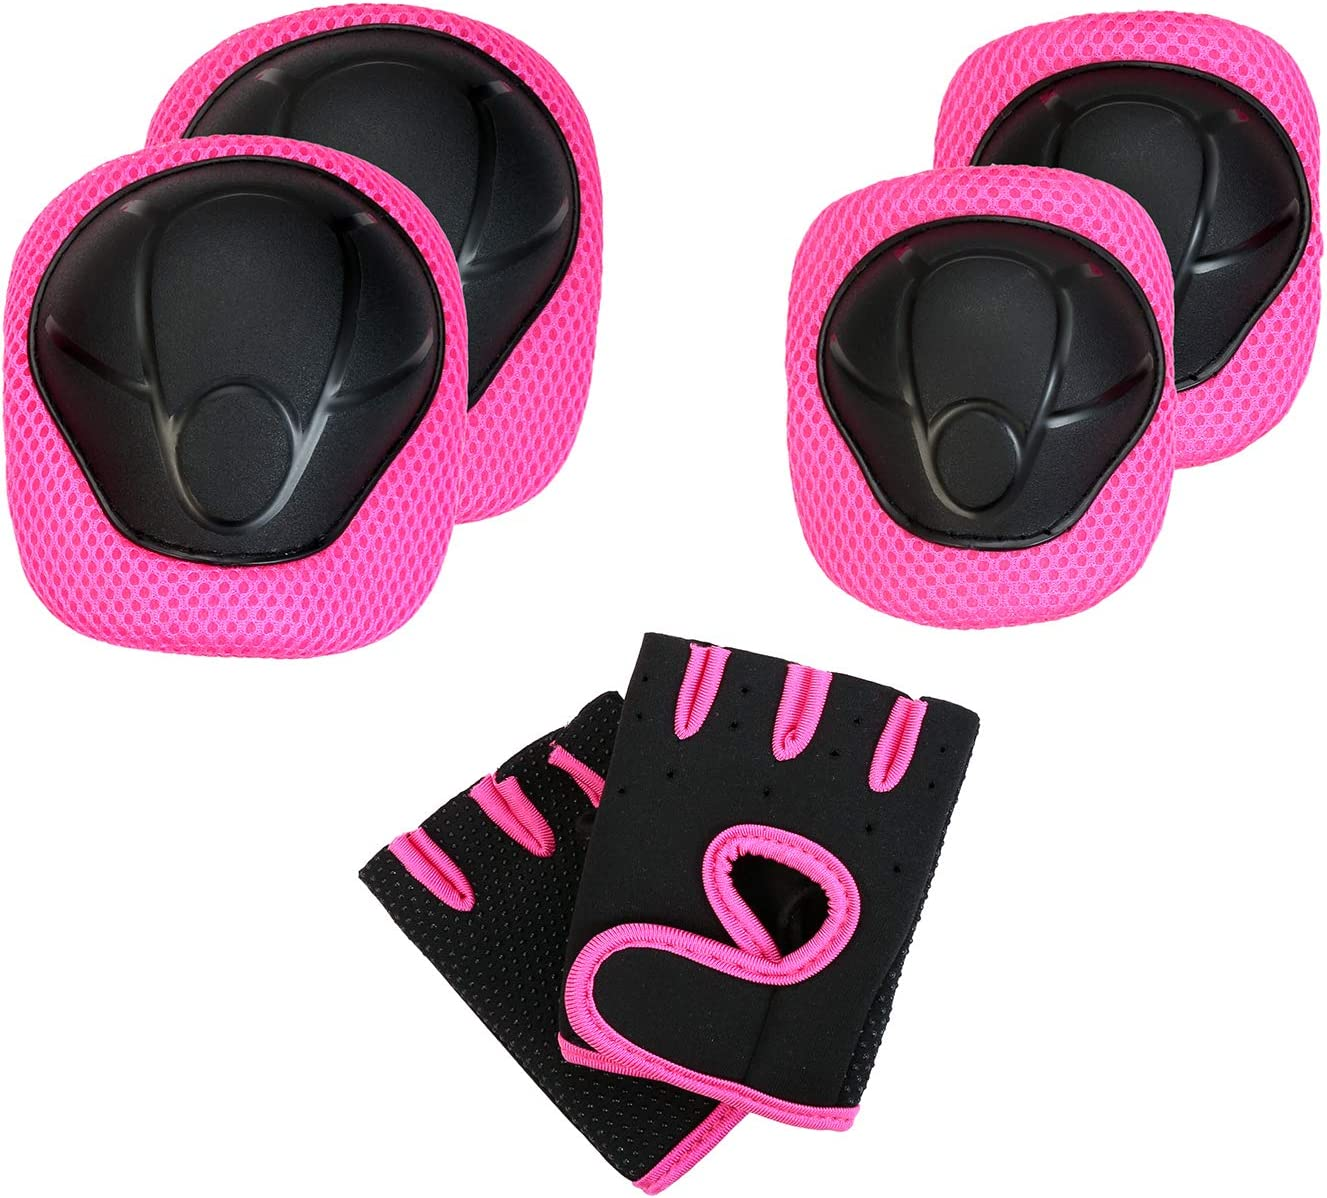 Childs Pad Set with Knee Elbow and Gloves for Biking Skating Riding Cycling Bike Rollerblading Scooter and Multi Sports Safety Protection EEDAN Kids Protective Gear